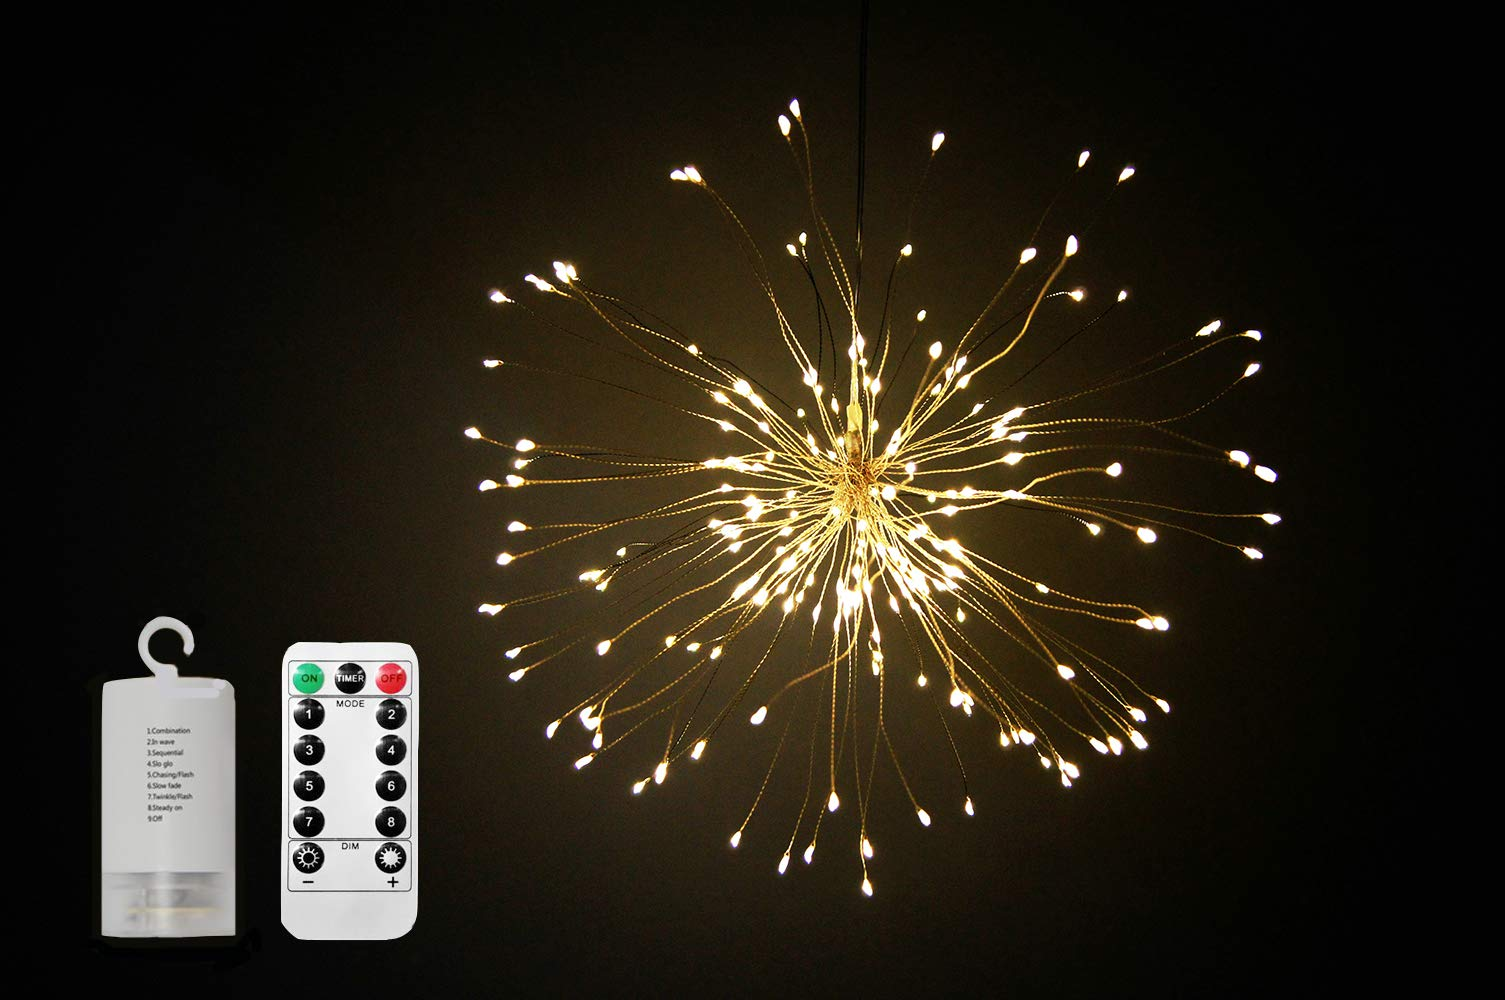 Viwind Fairy Starry String Lights Battery Operated Hanging Starburst Light with Remote Control,Decorative Bouquet lights for Christmas,Outdoor,Indoor,Patio,Wedding,Party,Banquet,Festival-Warm White